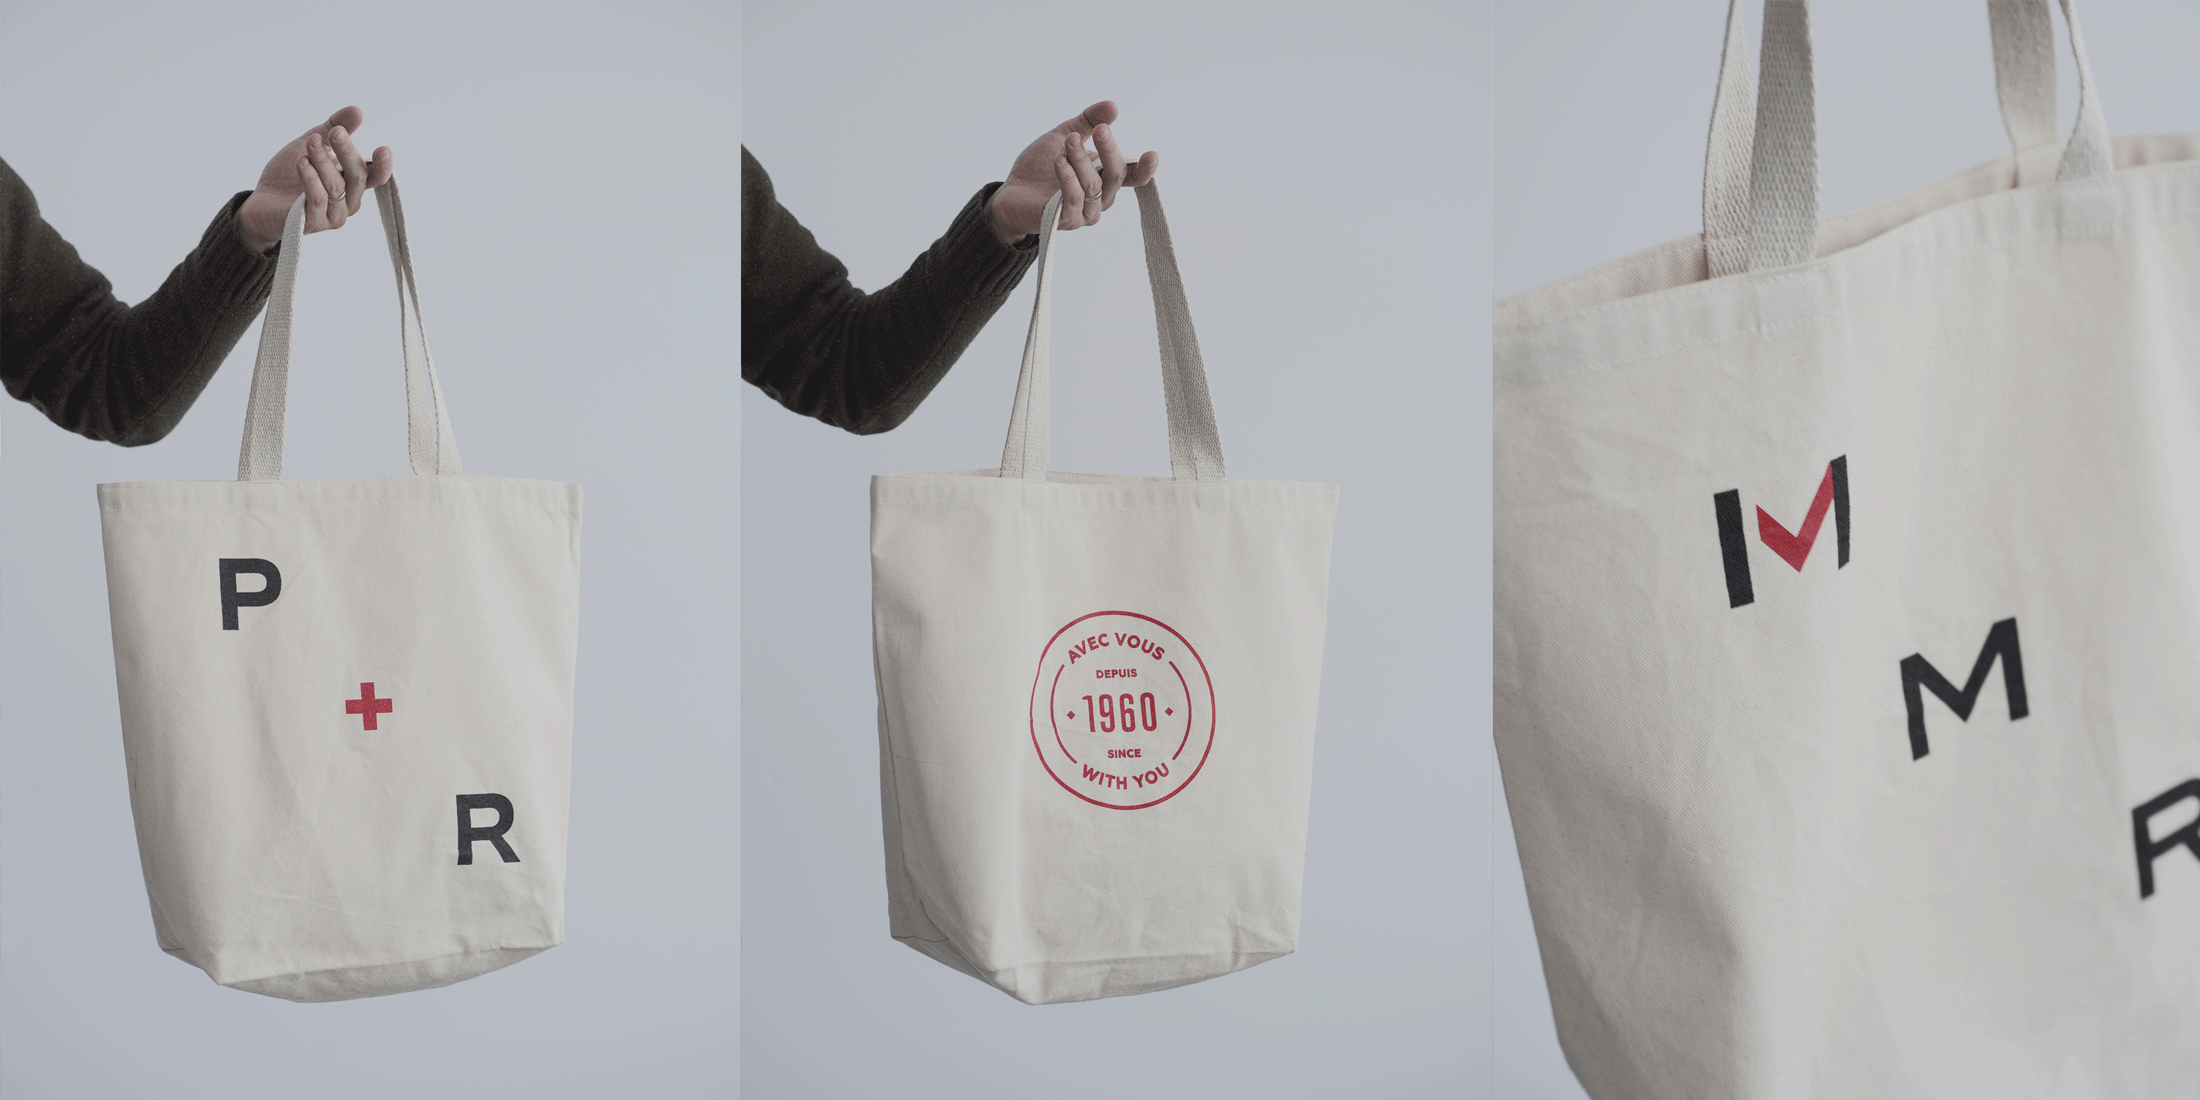 Tote bags for P&R Desjardins and MMR